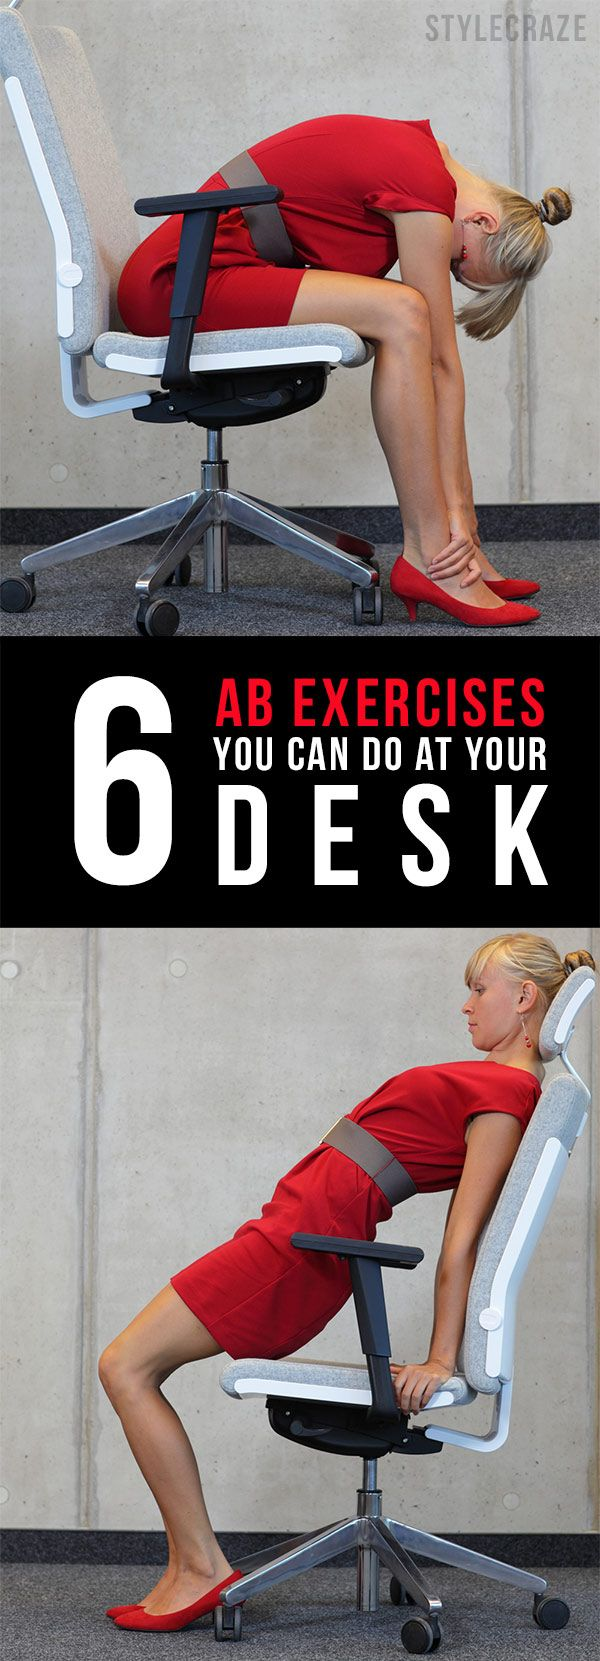 16 Simple Exercises To Reduce Belly Fat Desk Workoutworkout Hairoffice